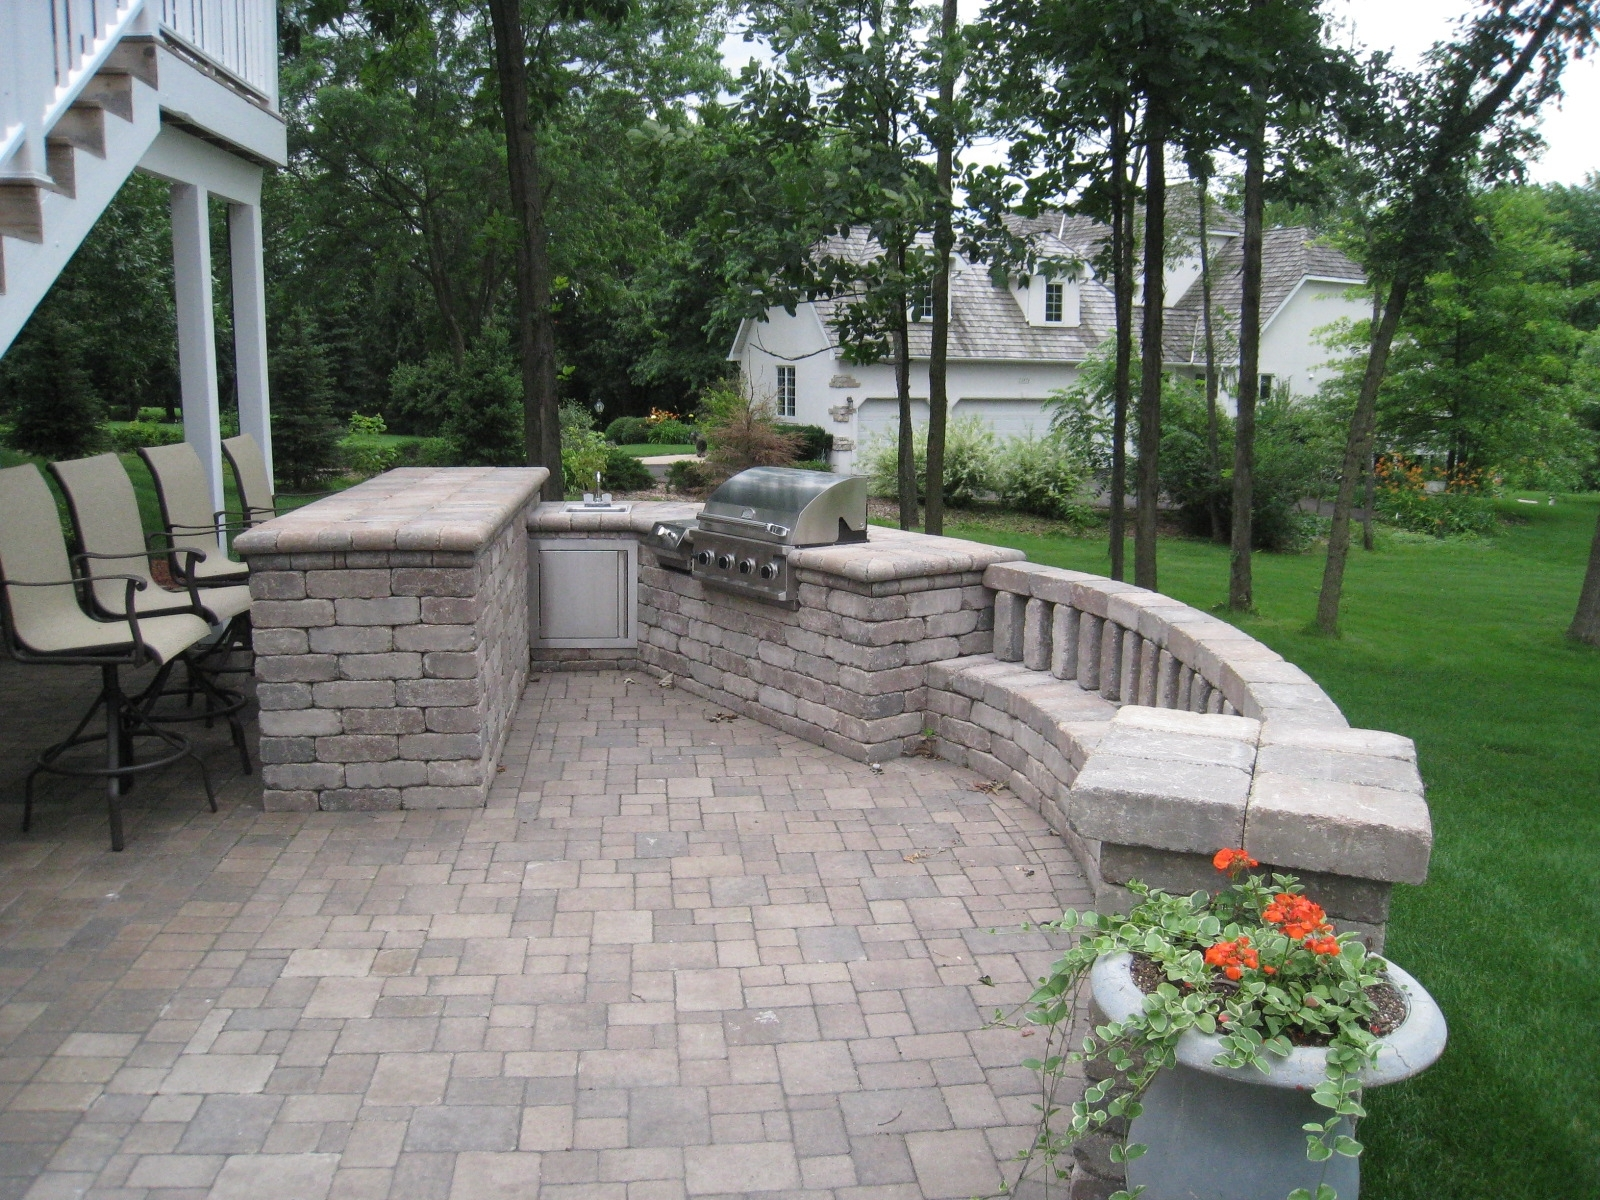 Image of: Outdoor Garden Design Decorative Natty Unilock Pavers For Intended For Unilock Outdoor Kitchens Decorate Unilock Outdoor Kitchens